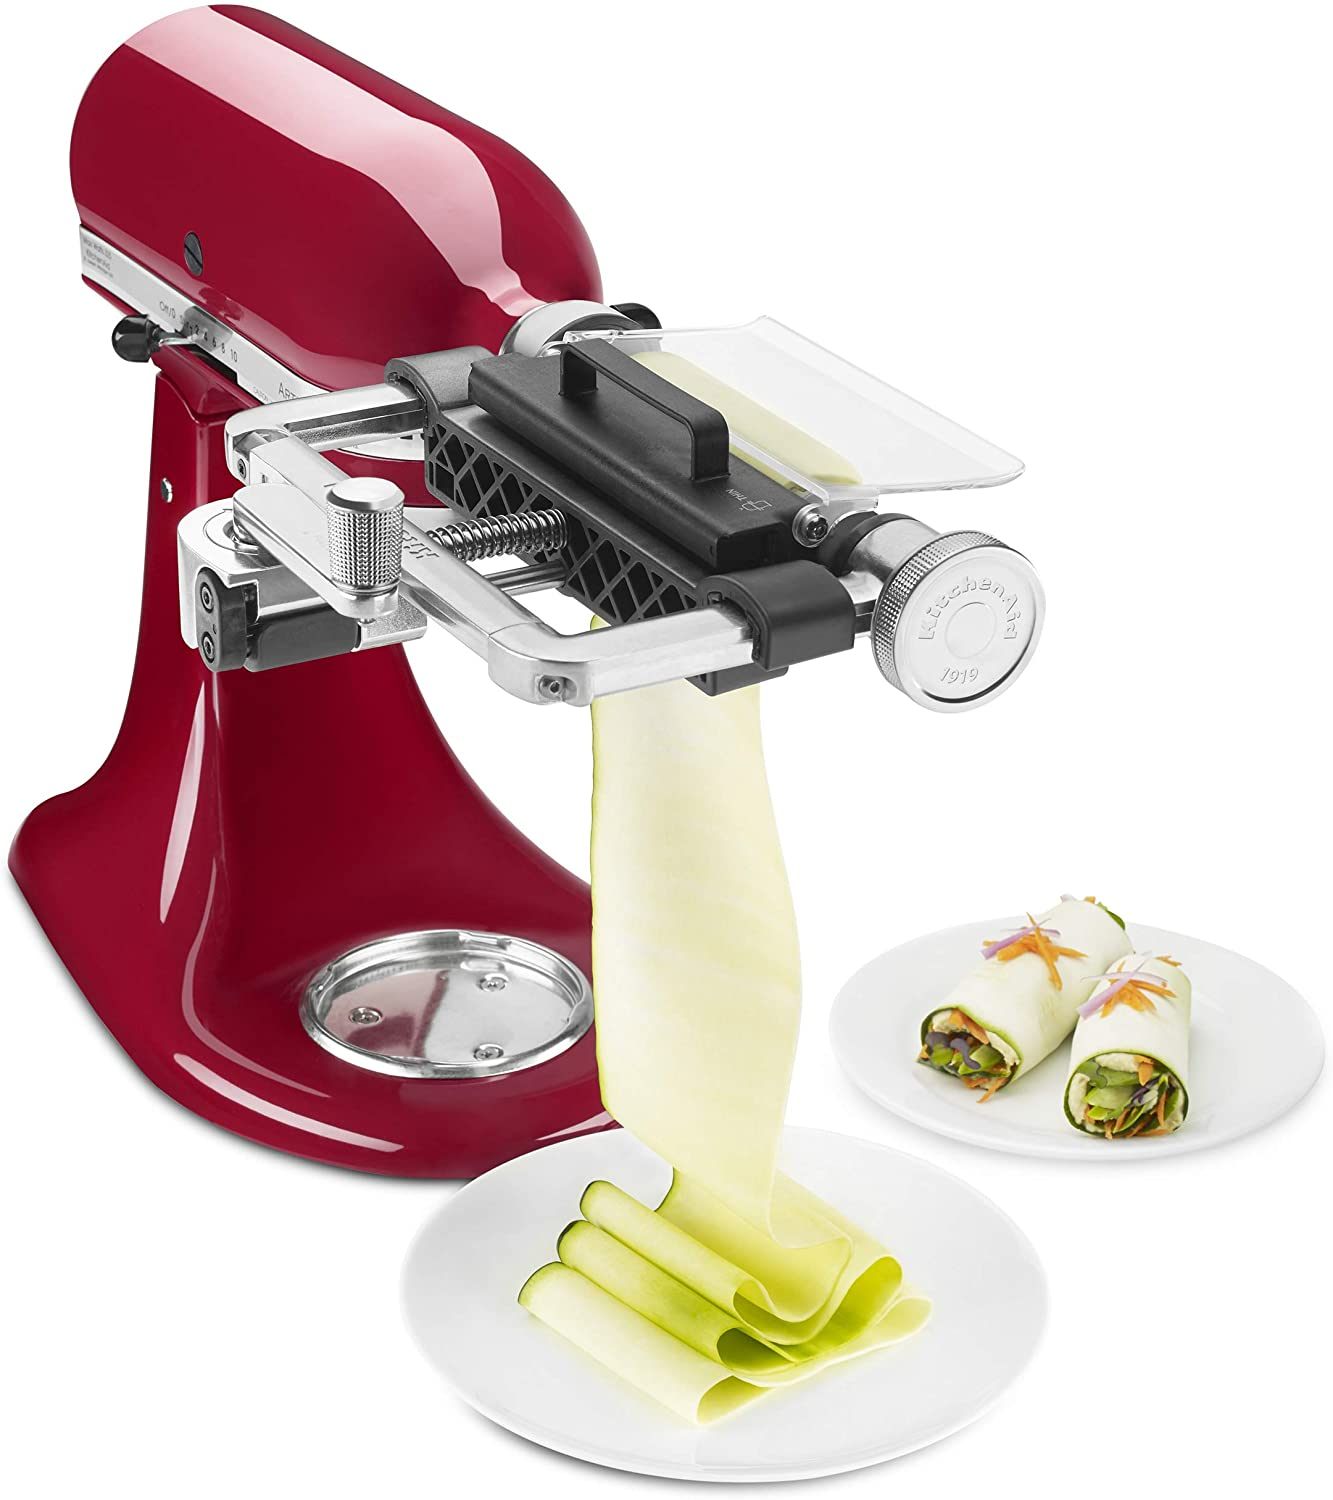 B072TNMLNF KitchenAid KSMSCA Vegetable Sheet Cutter, 1, Metallic 71GvEaLmVwL.SL1500_